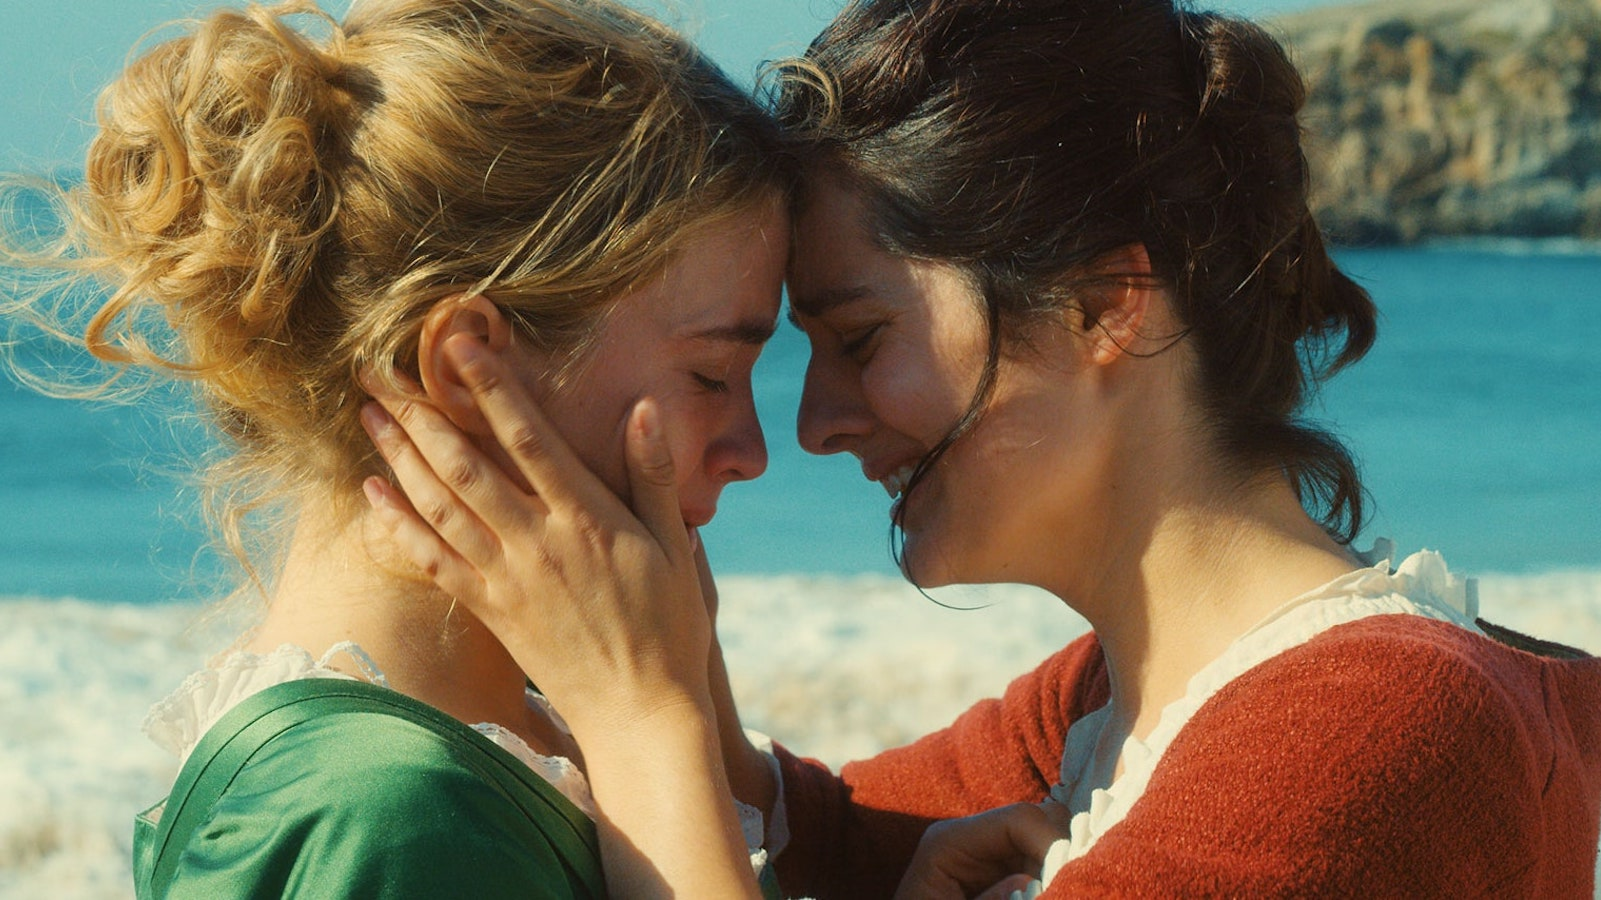 Movies to watch during Pride: Portrait of a Lady on Fire